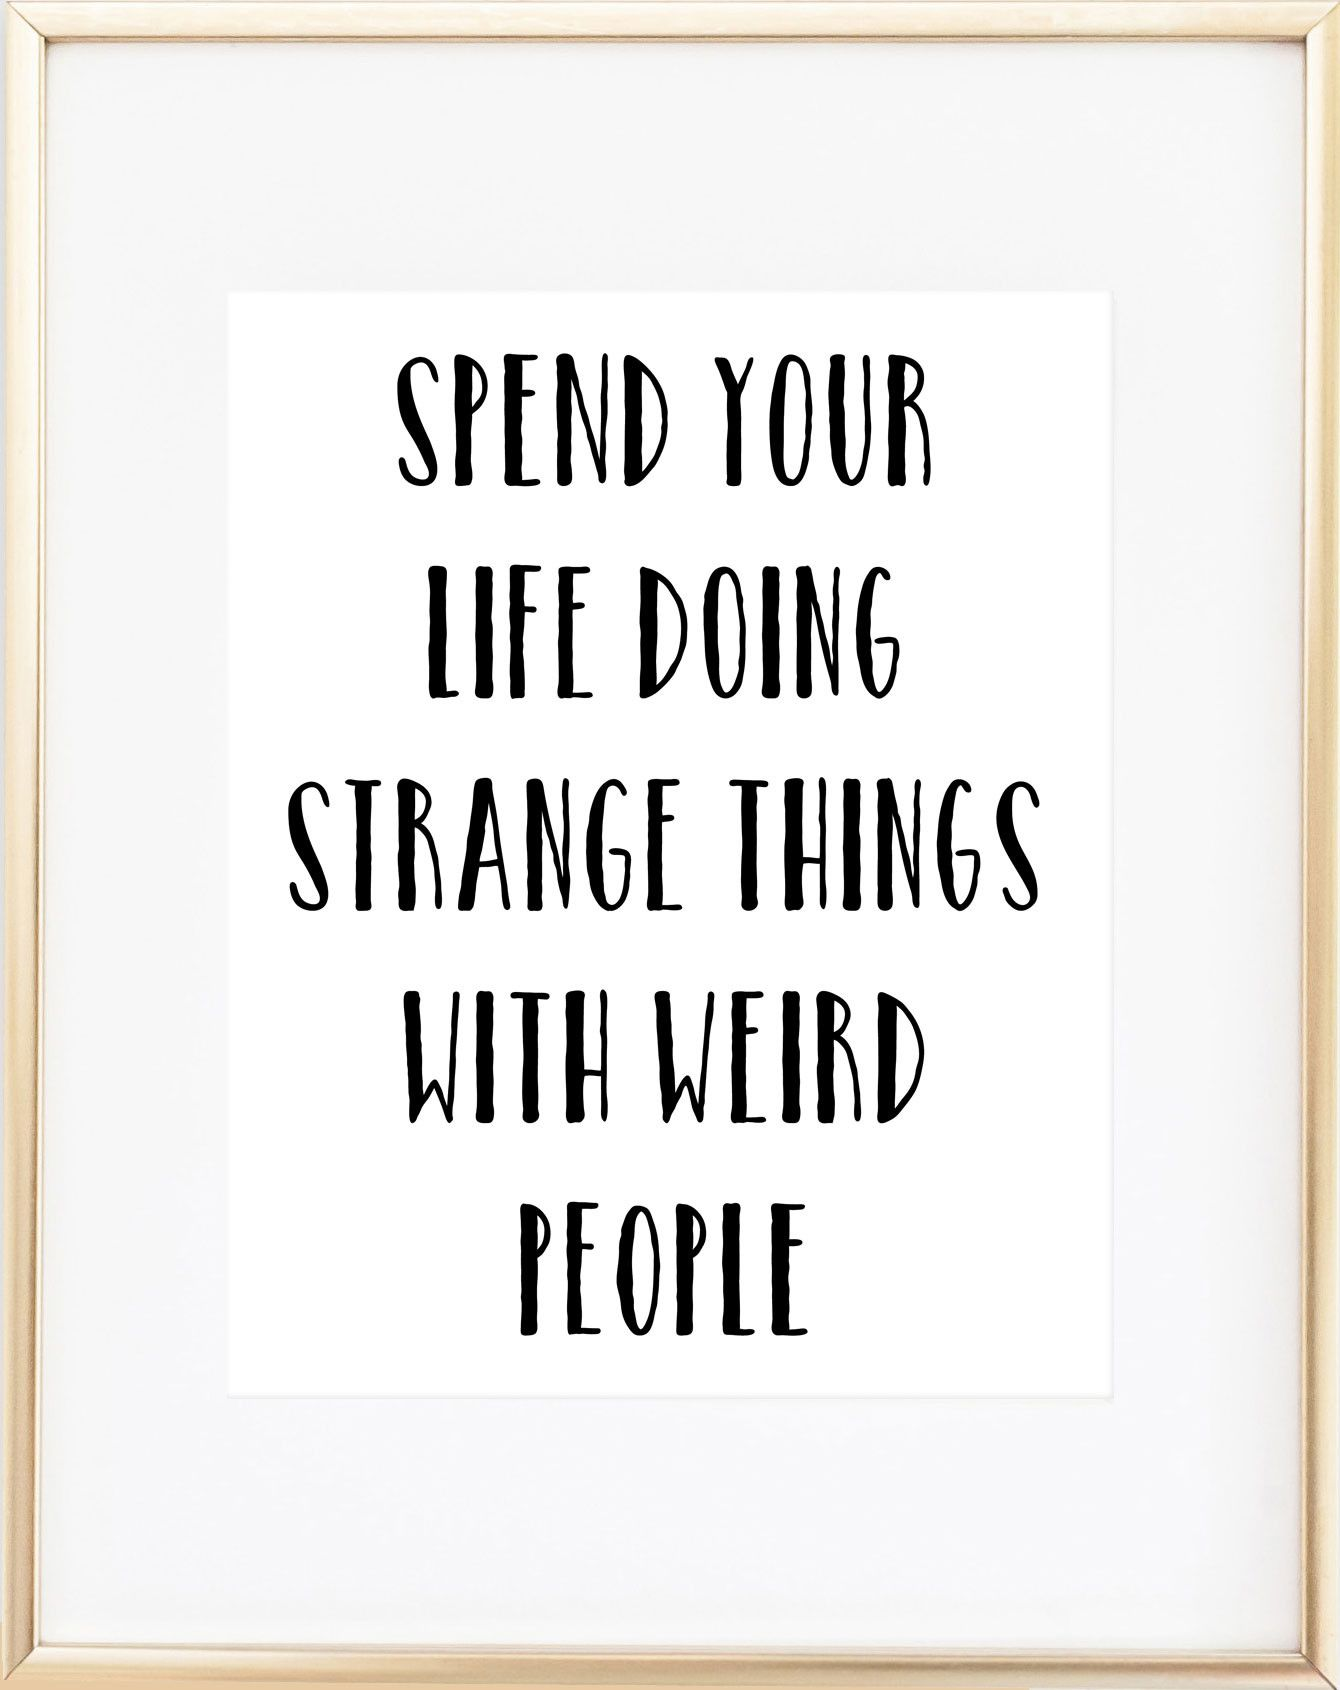 Spend Your Life Doing Strange Things With Weird People Print Happy Quotes Inspirational Inspirational Quotes Life Quotes